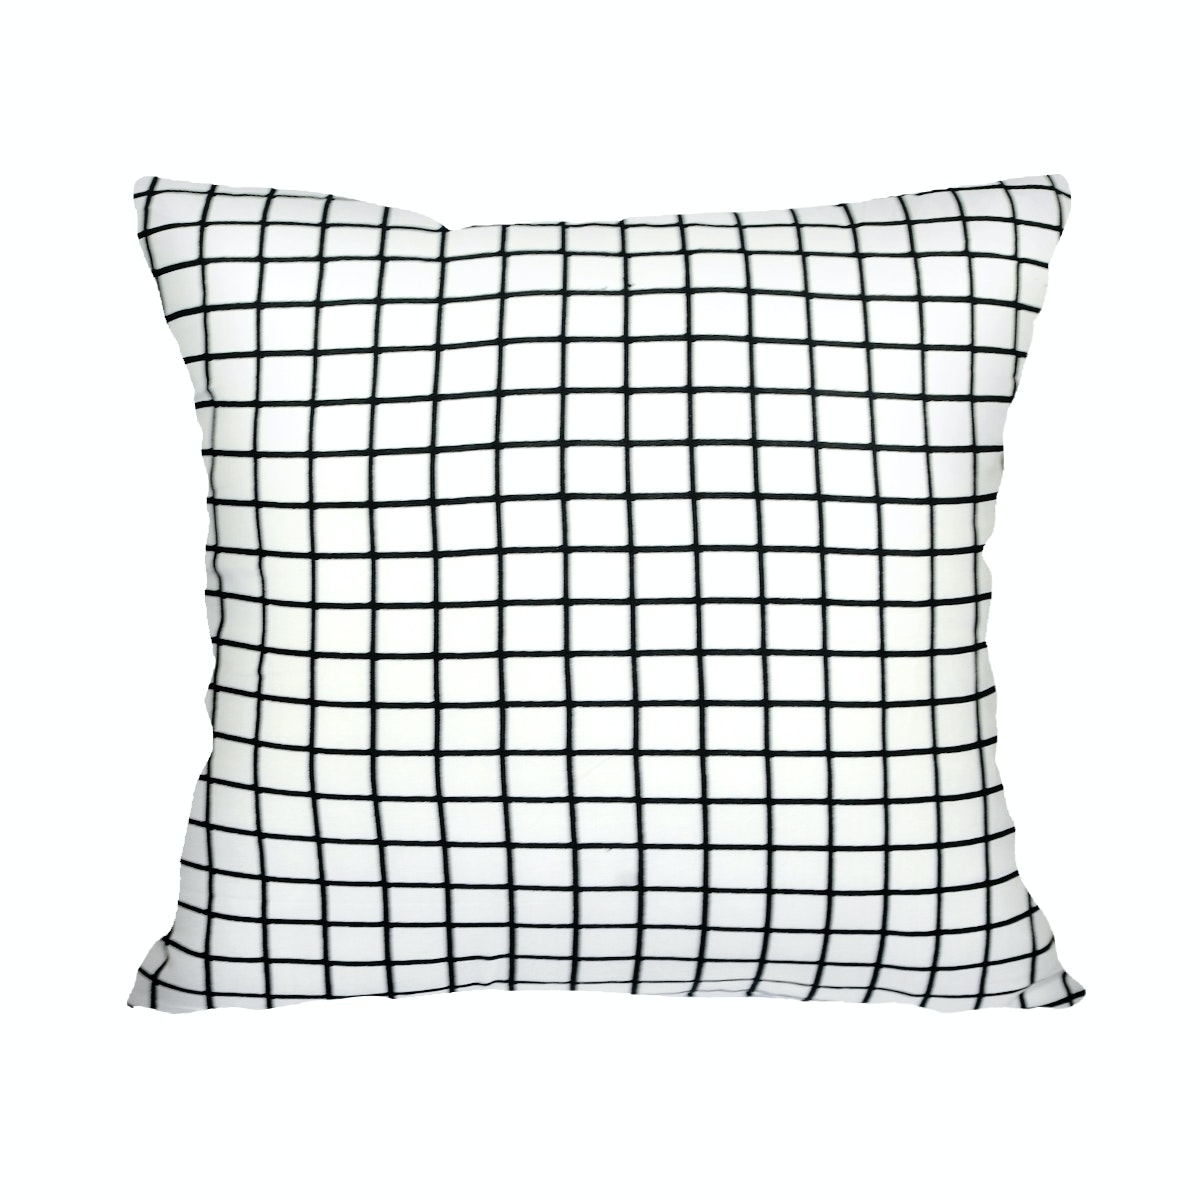 Stiletto In Style Cushion Cover / Sarung Bantal Monokrom - Bw White Square